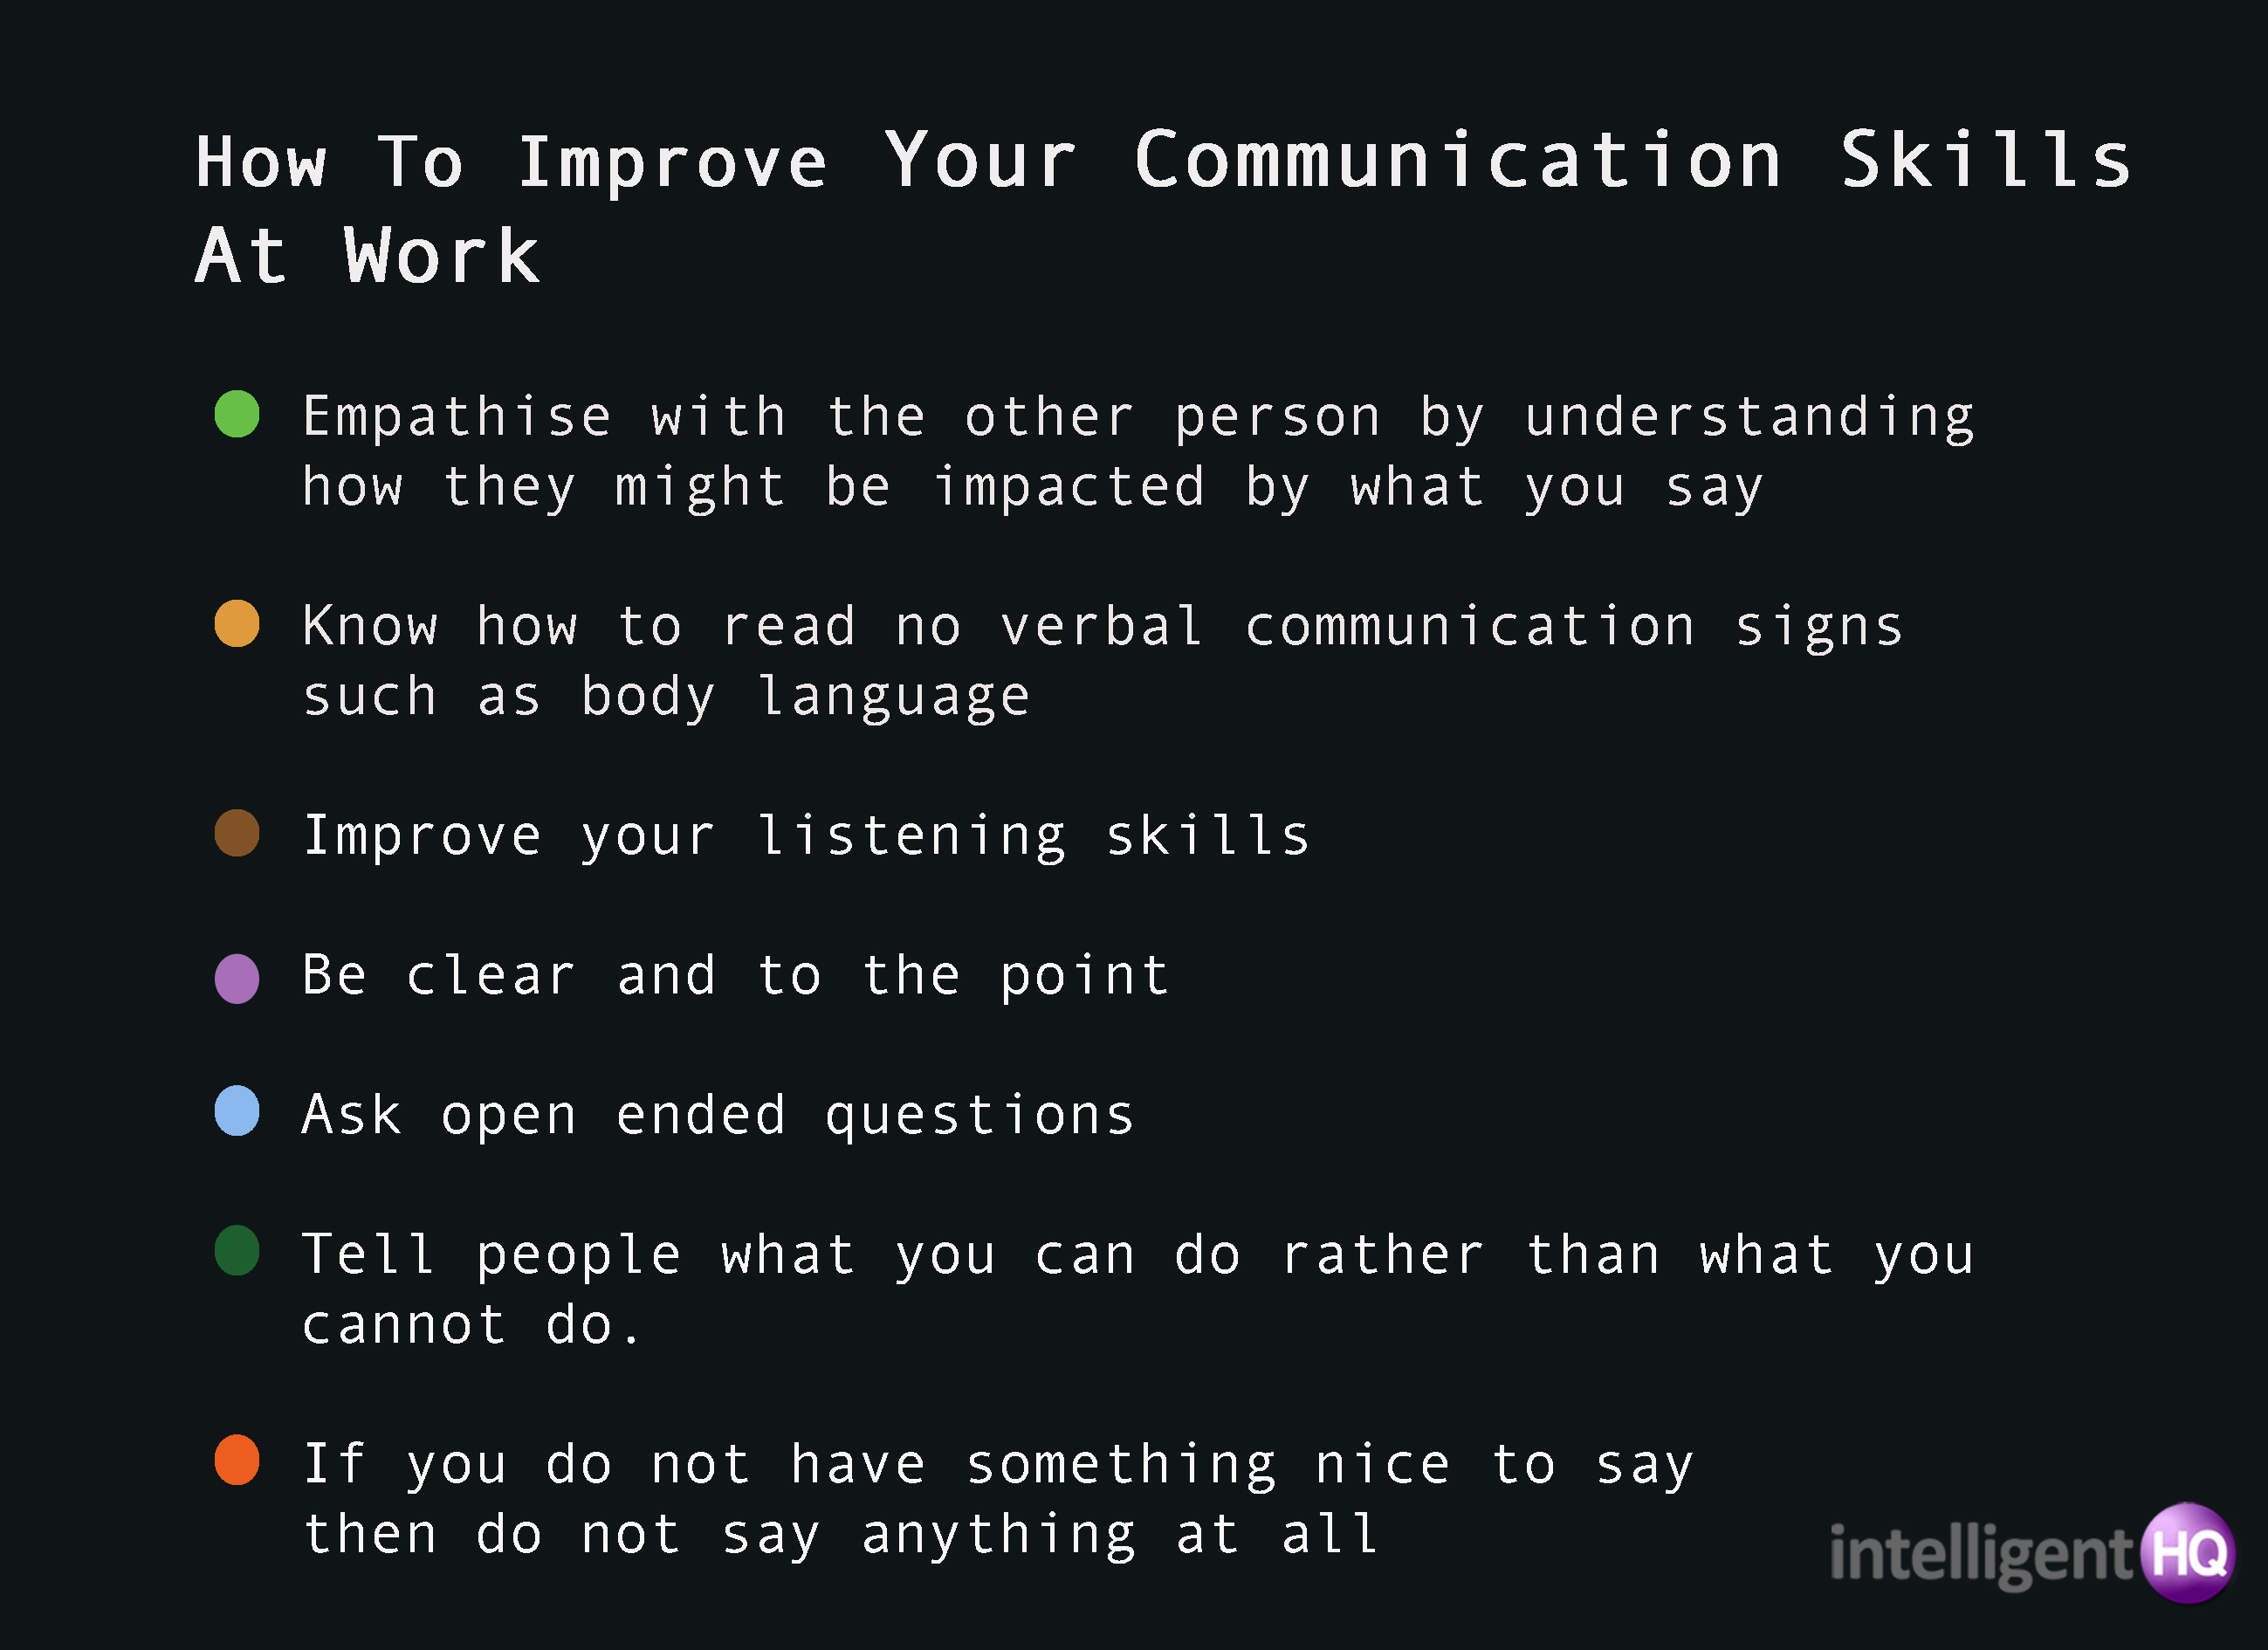 5 Ways To Make Great Communication A Top Priority